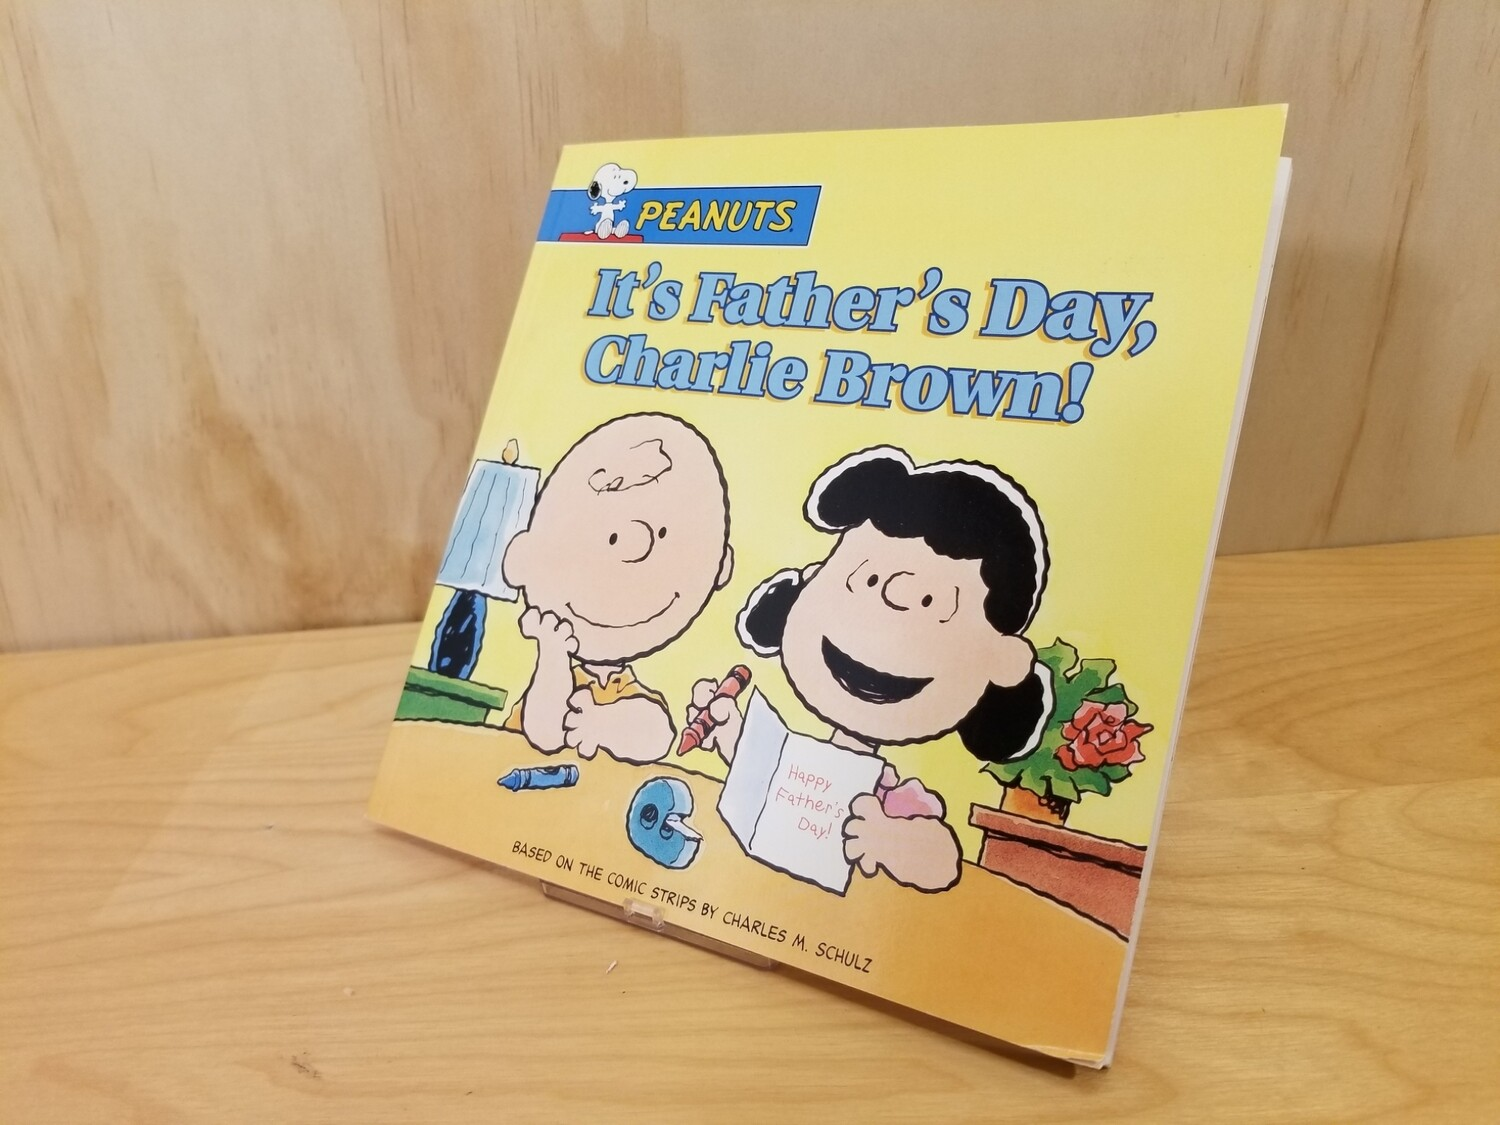 It's Father's Day Charlie Brown! Book